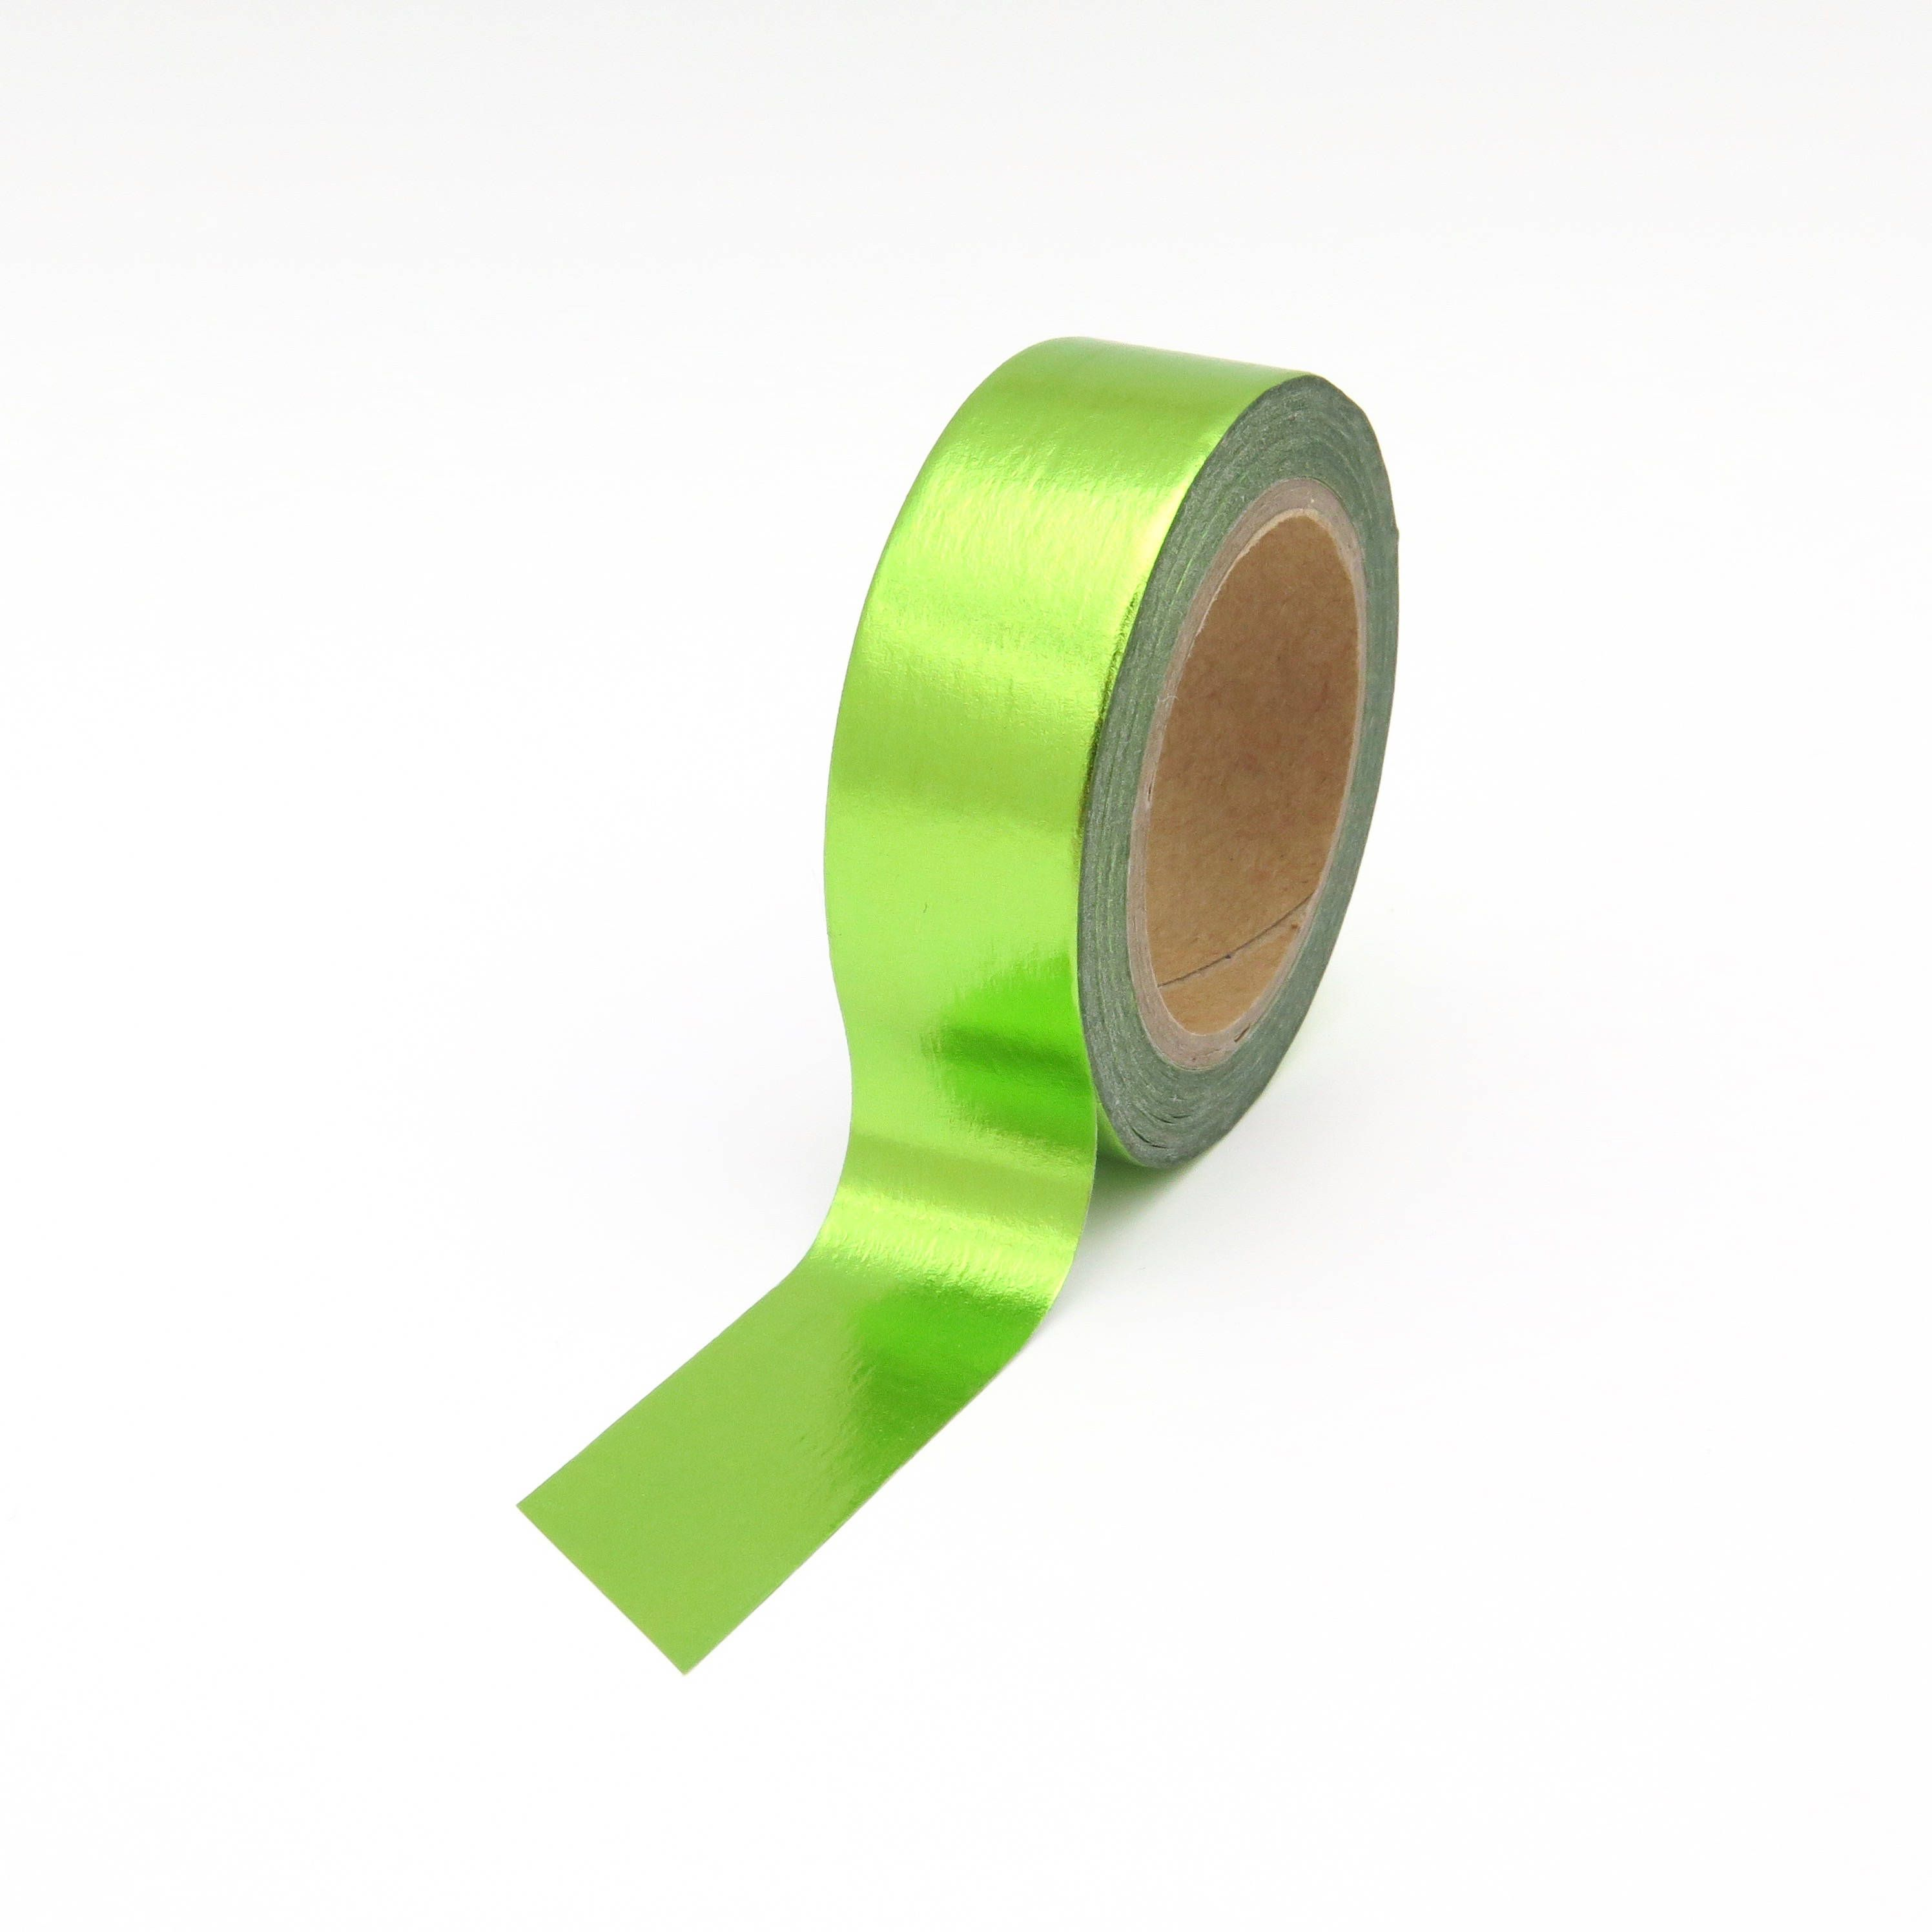 Craft Decorative Tape Light Green Plain Washi Tape